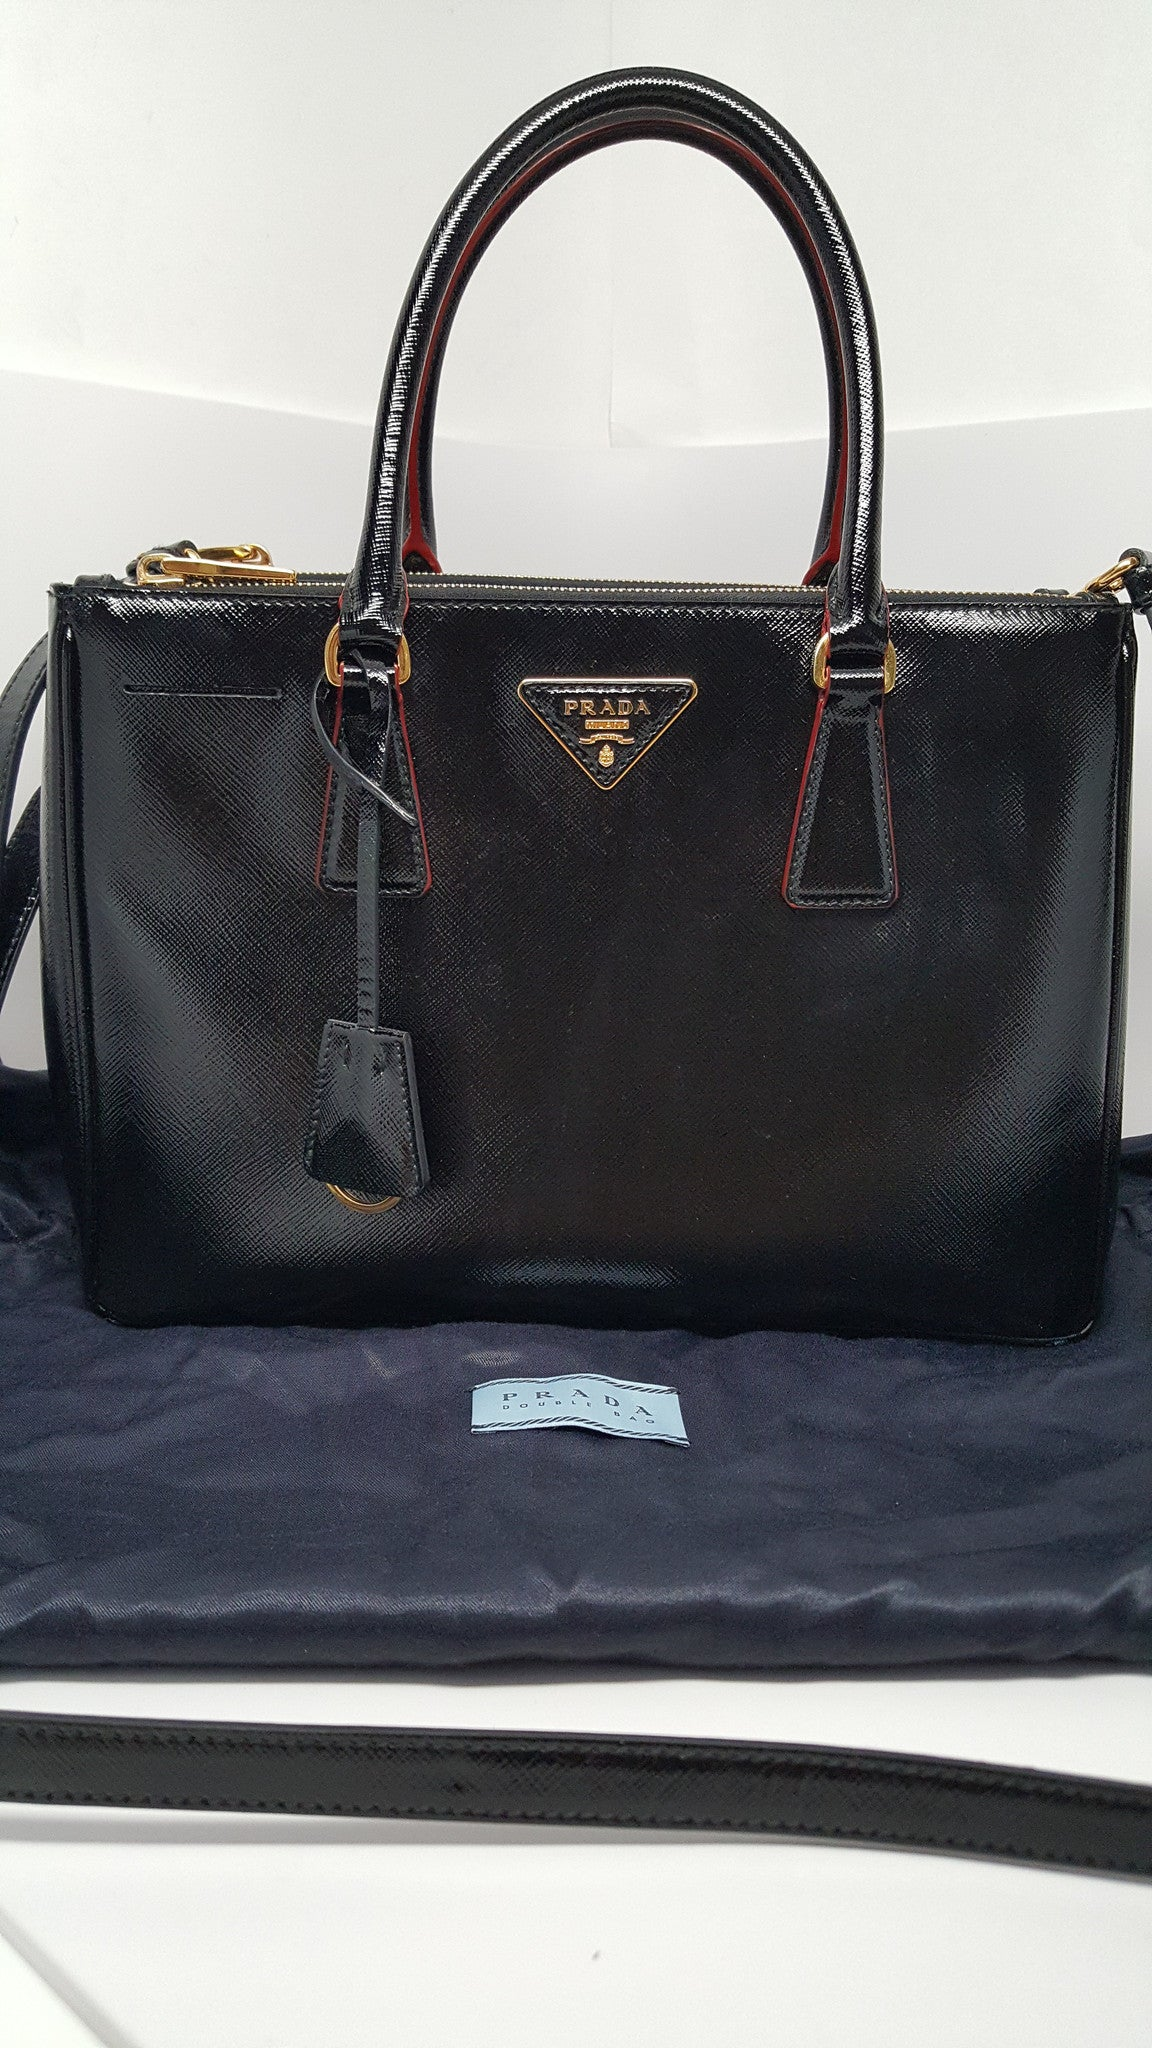 0b82ce8529e2d0 PRADA GLOSSY SAFFIANO LUX DOUBLE ZIP BLACK TOTE - MEDIUM – Hebster Boutique